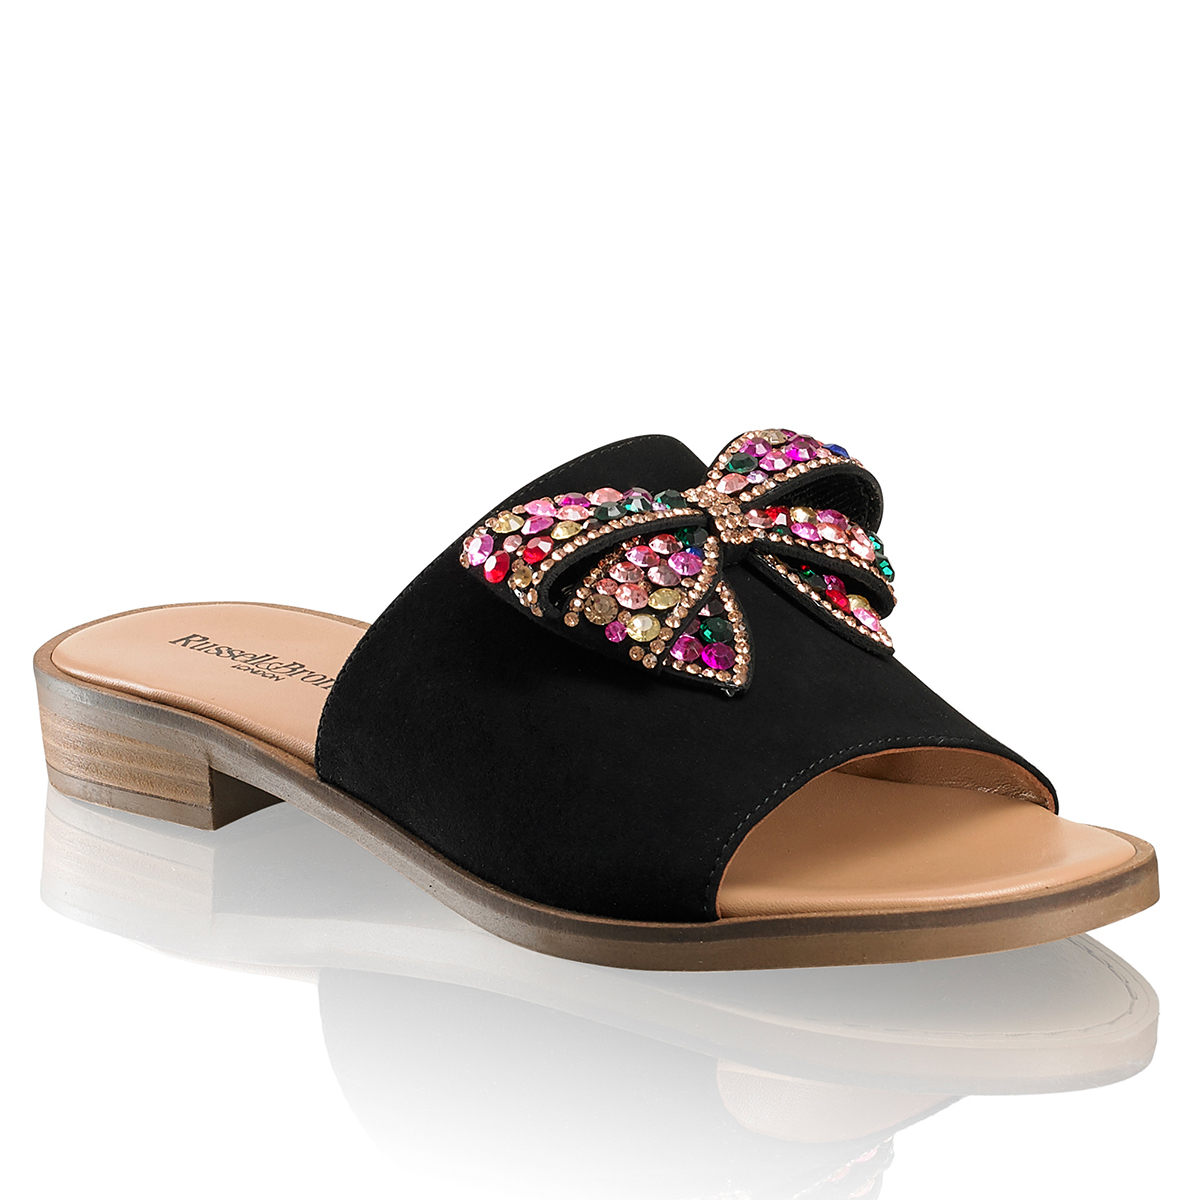 russell and bromley sale sandals